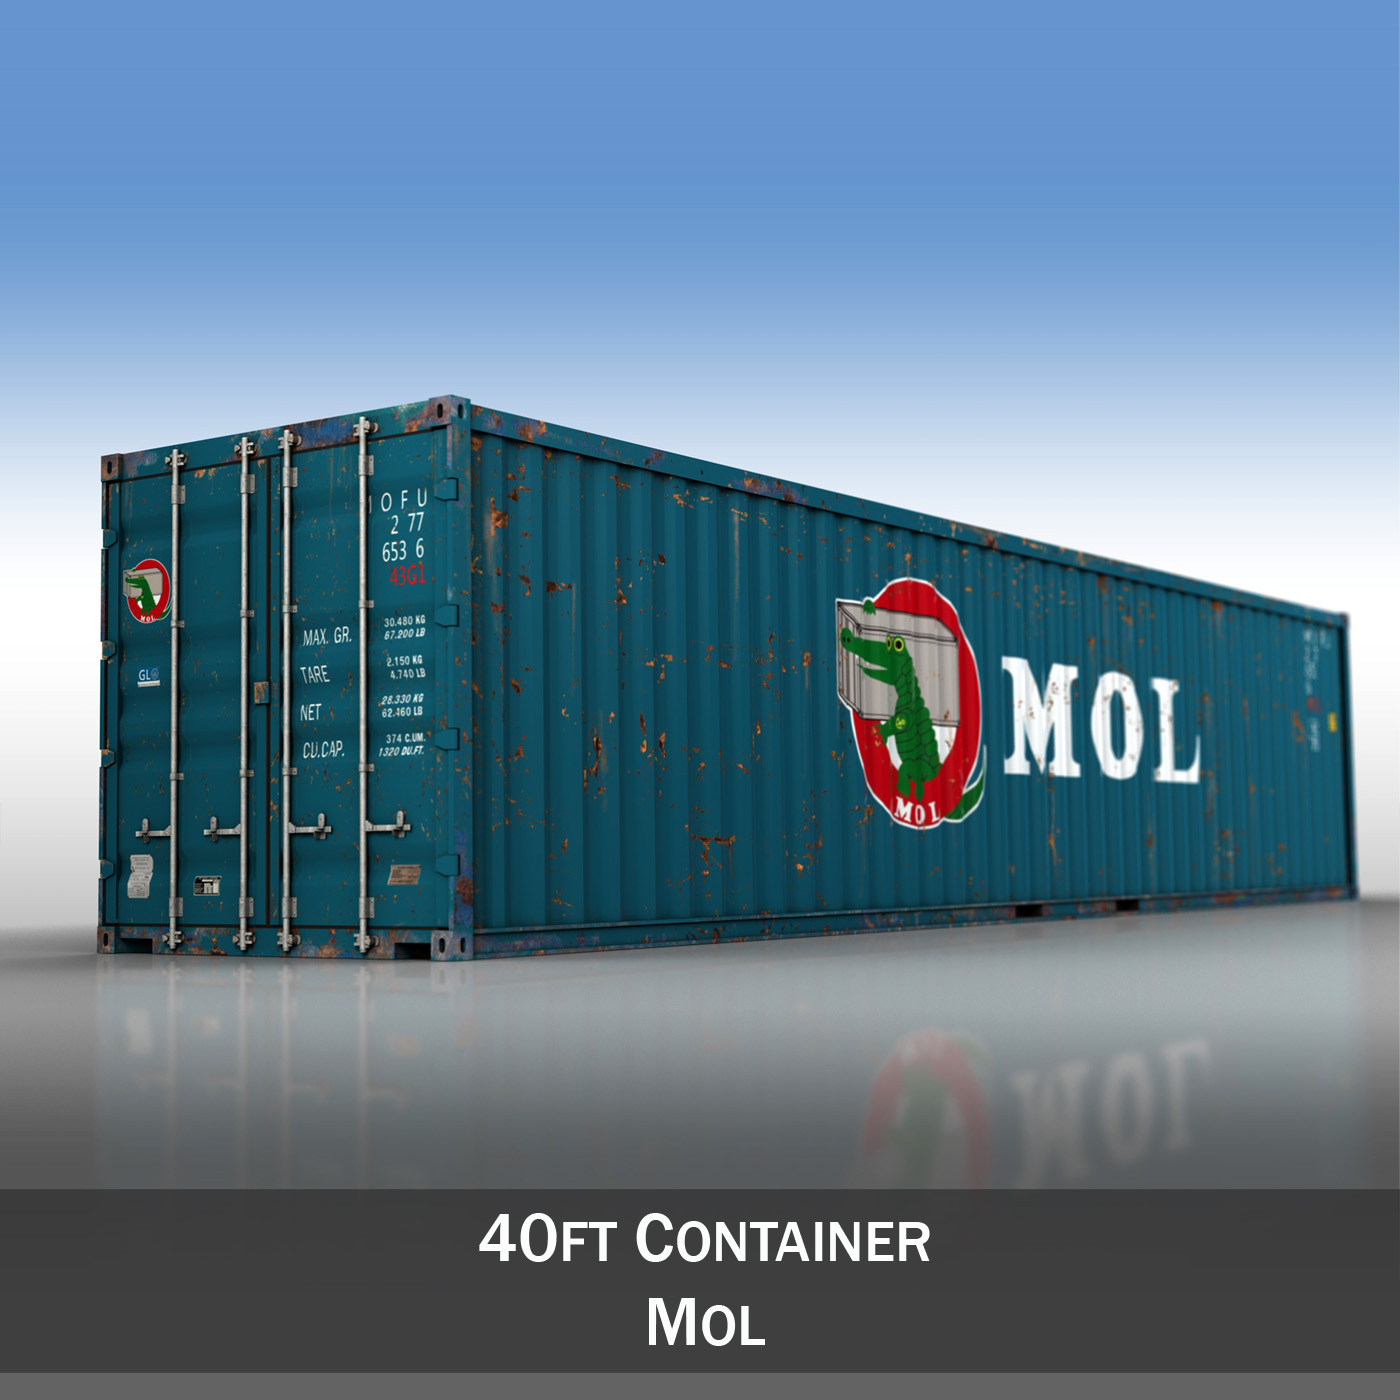 40ft shipping container – mol 3d model 3ds fbx lwo lw lws obj c4d 265132